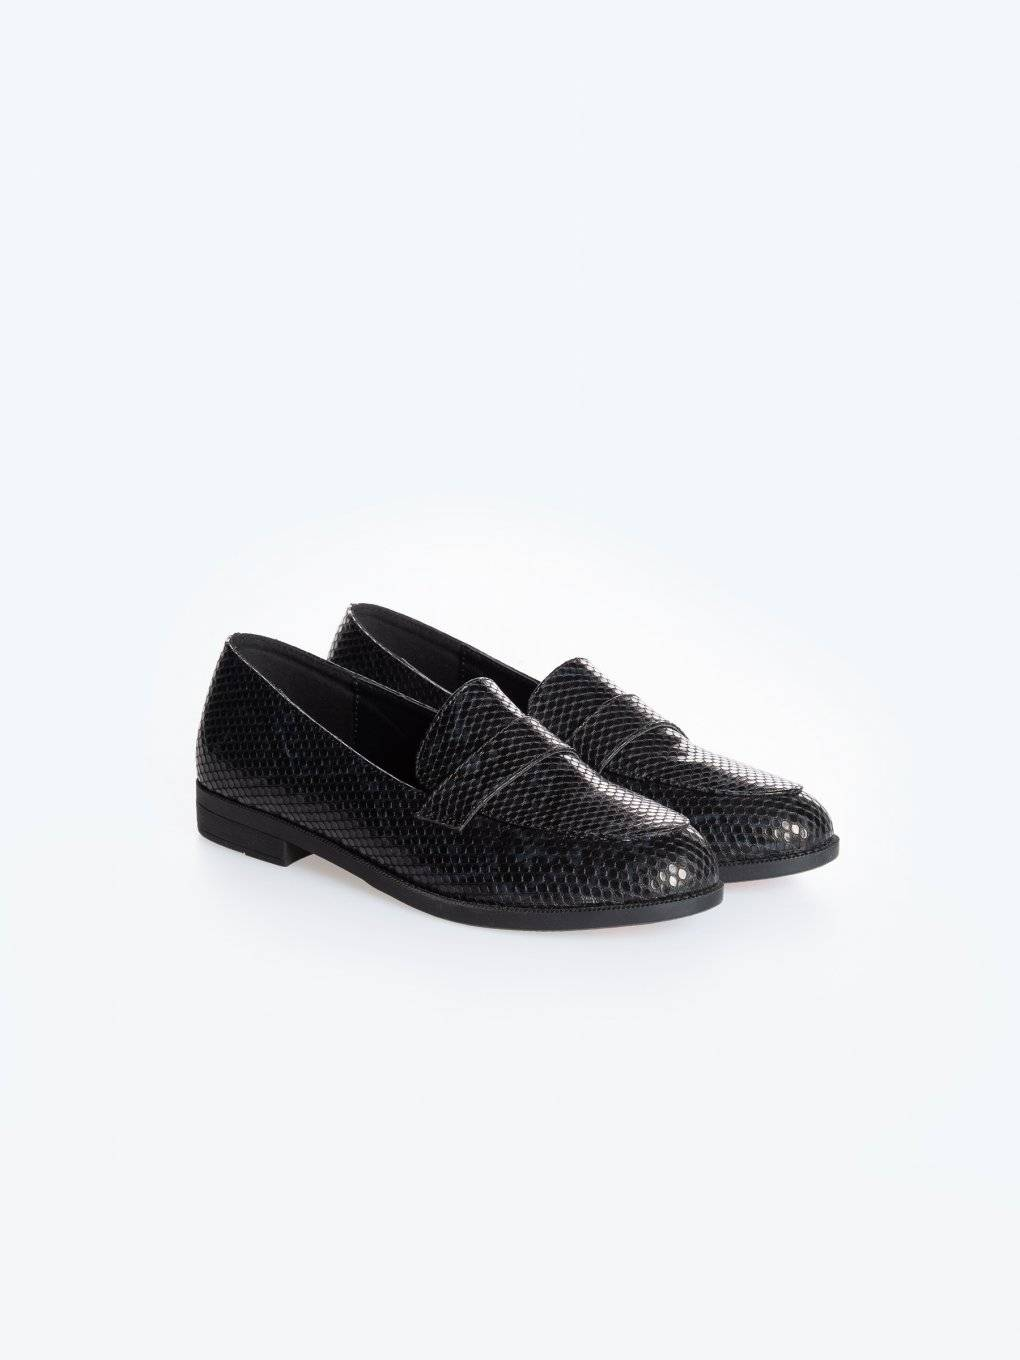 Faux snake skin loafers